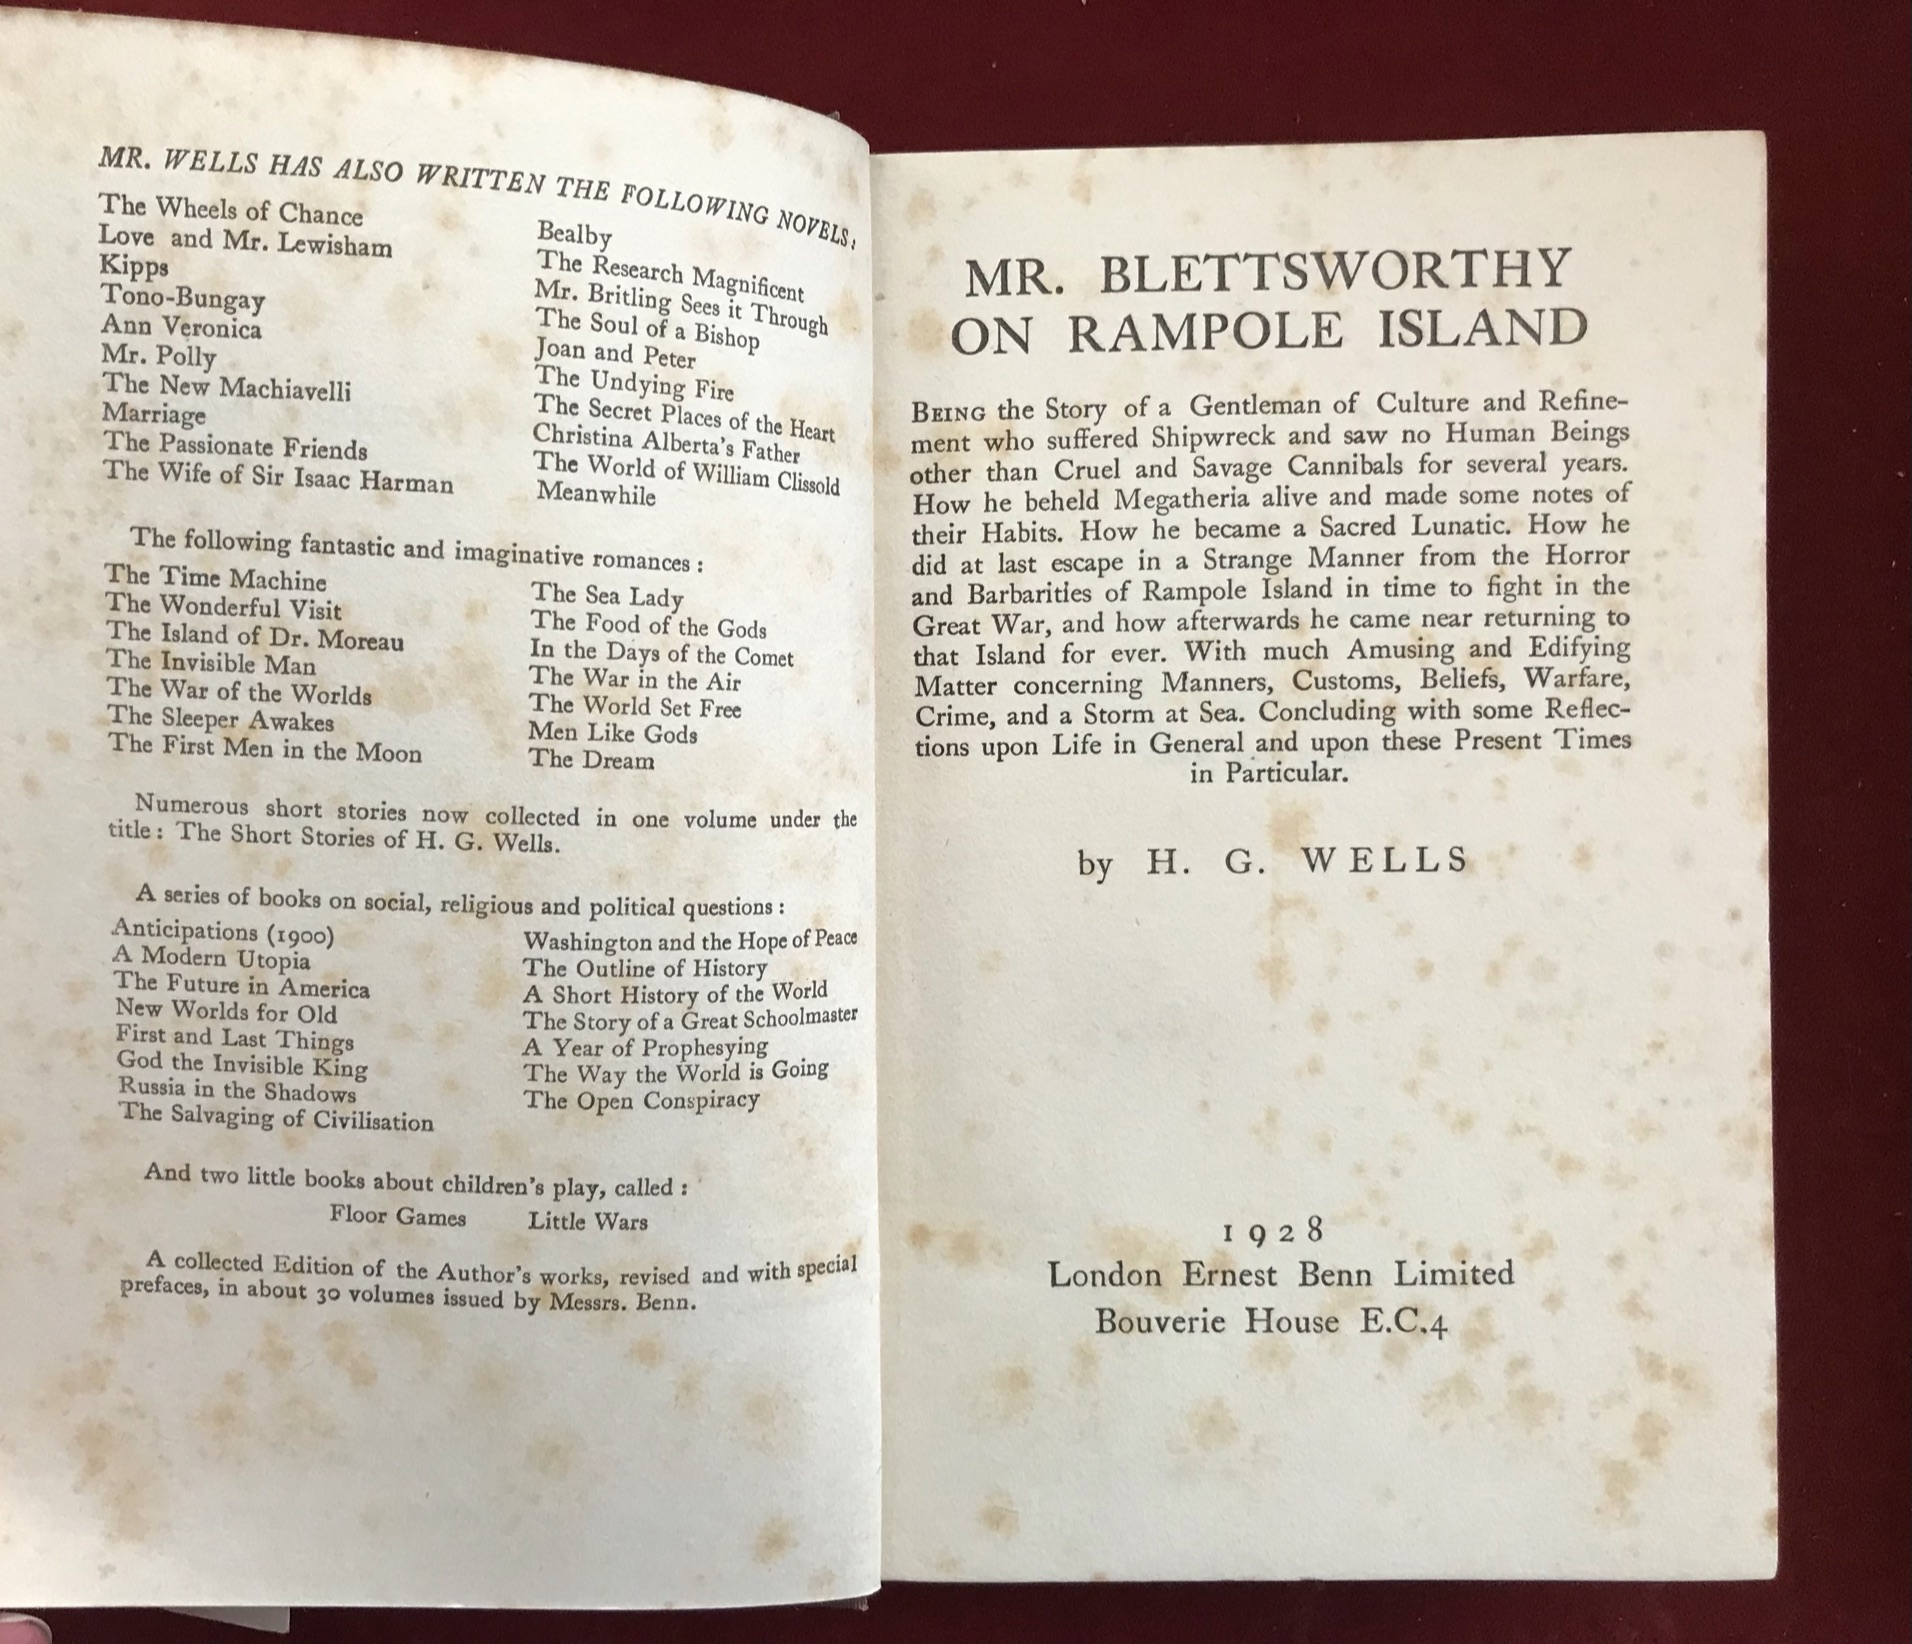 Mr. Blettsworthy on Rampole Island First edition with D/W, foxed edges, 1928 - Image 2 of 2